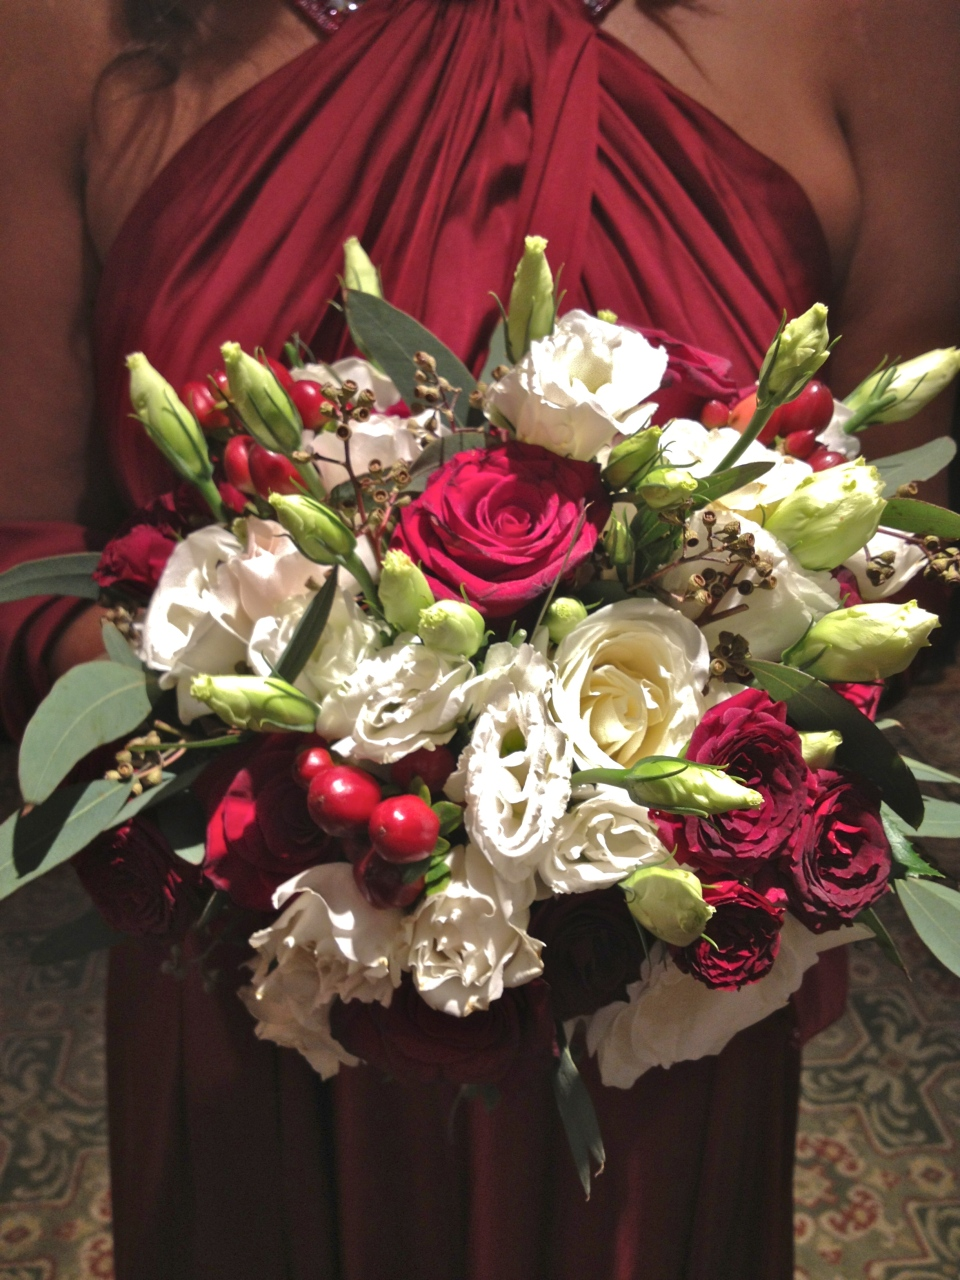 Cranberry and white bouquet of roses, lisianthus, berries and greens